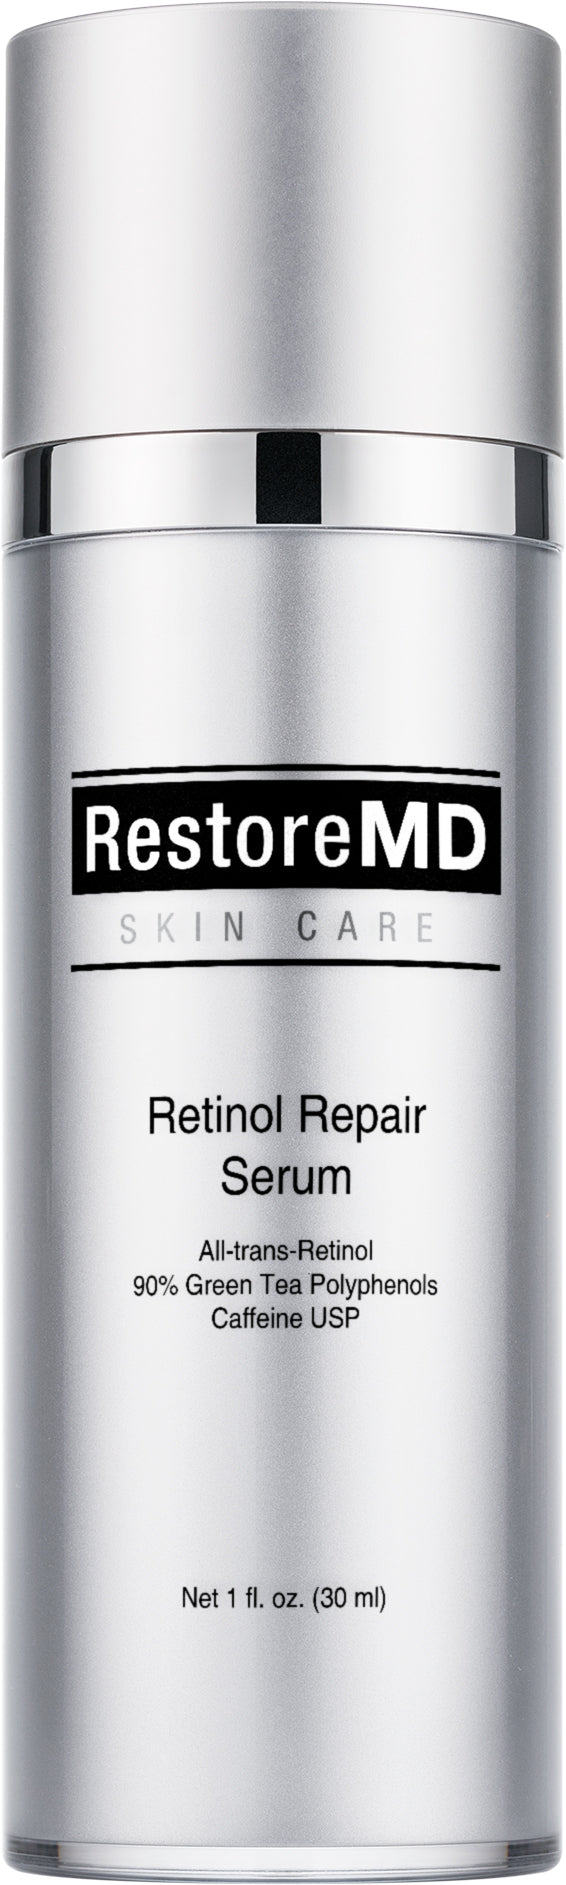 Retinol Repair Serum